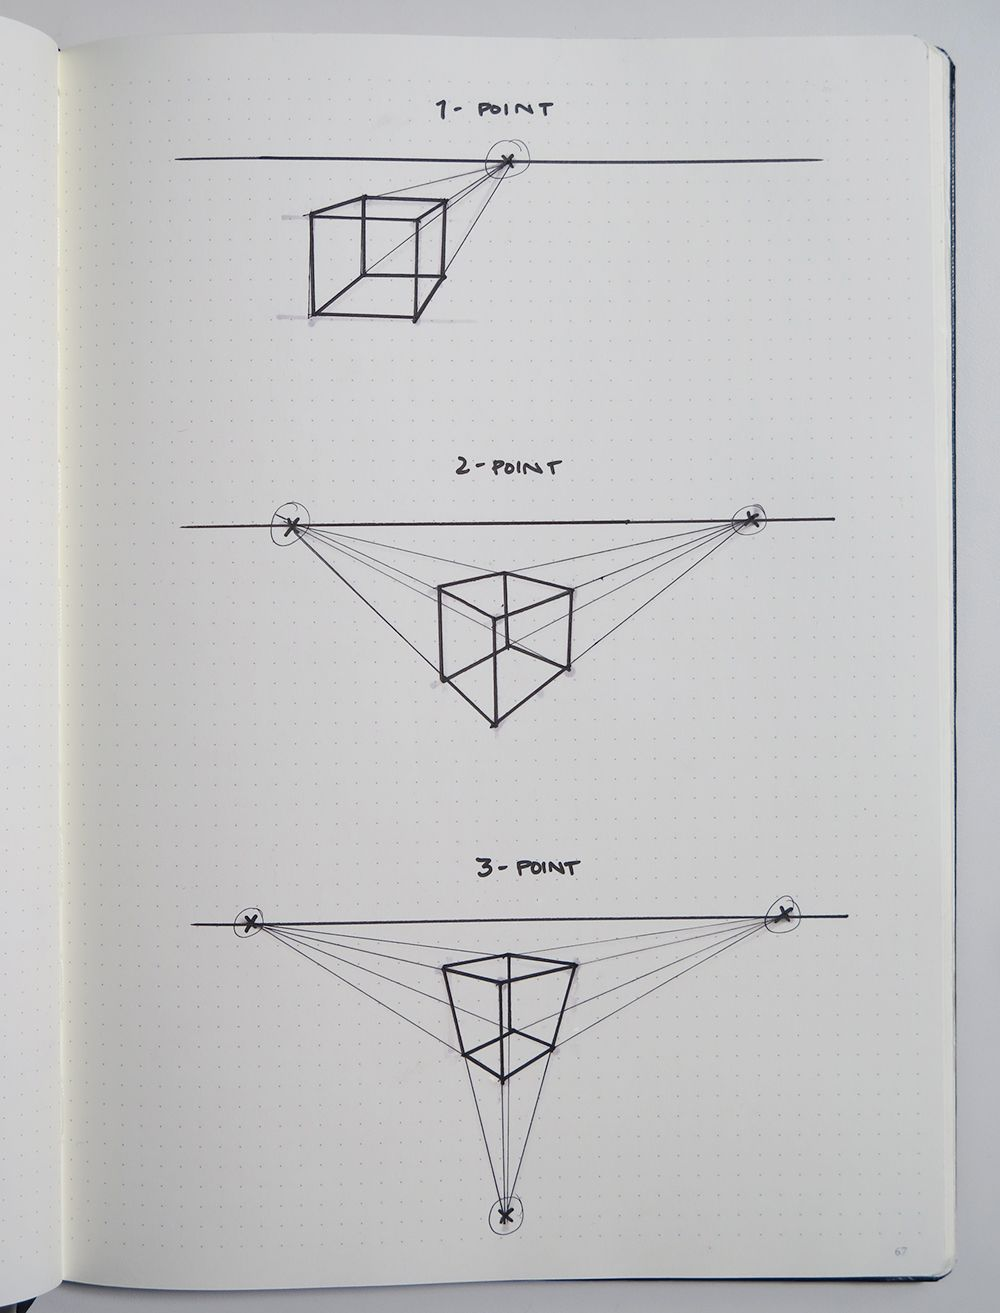 How To Draw Perspective: For Makers How to Draw Perspective: for Makers Drawing Tips perspective drawing